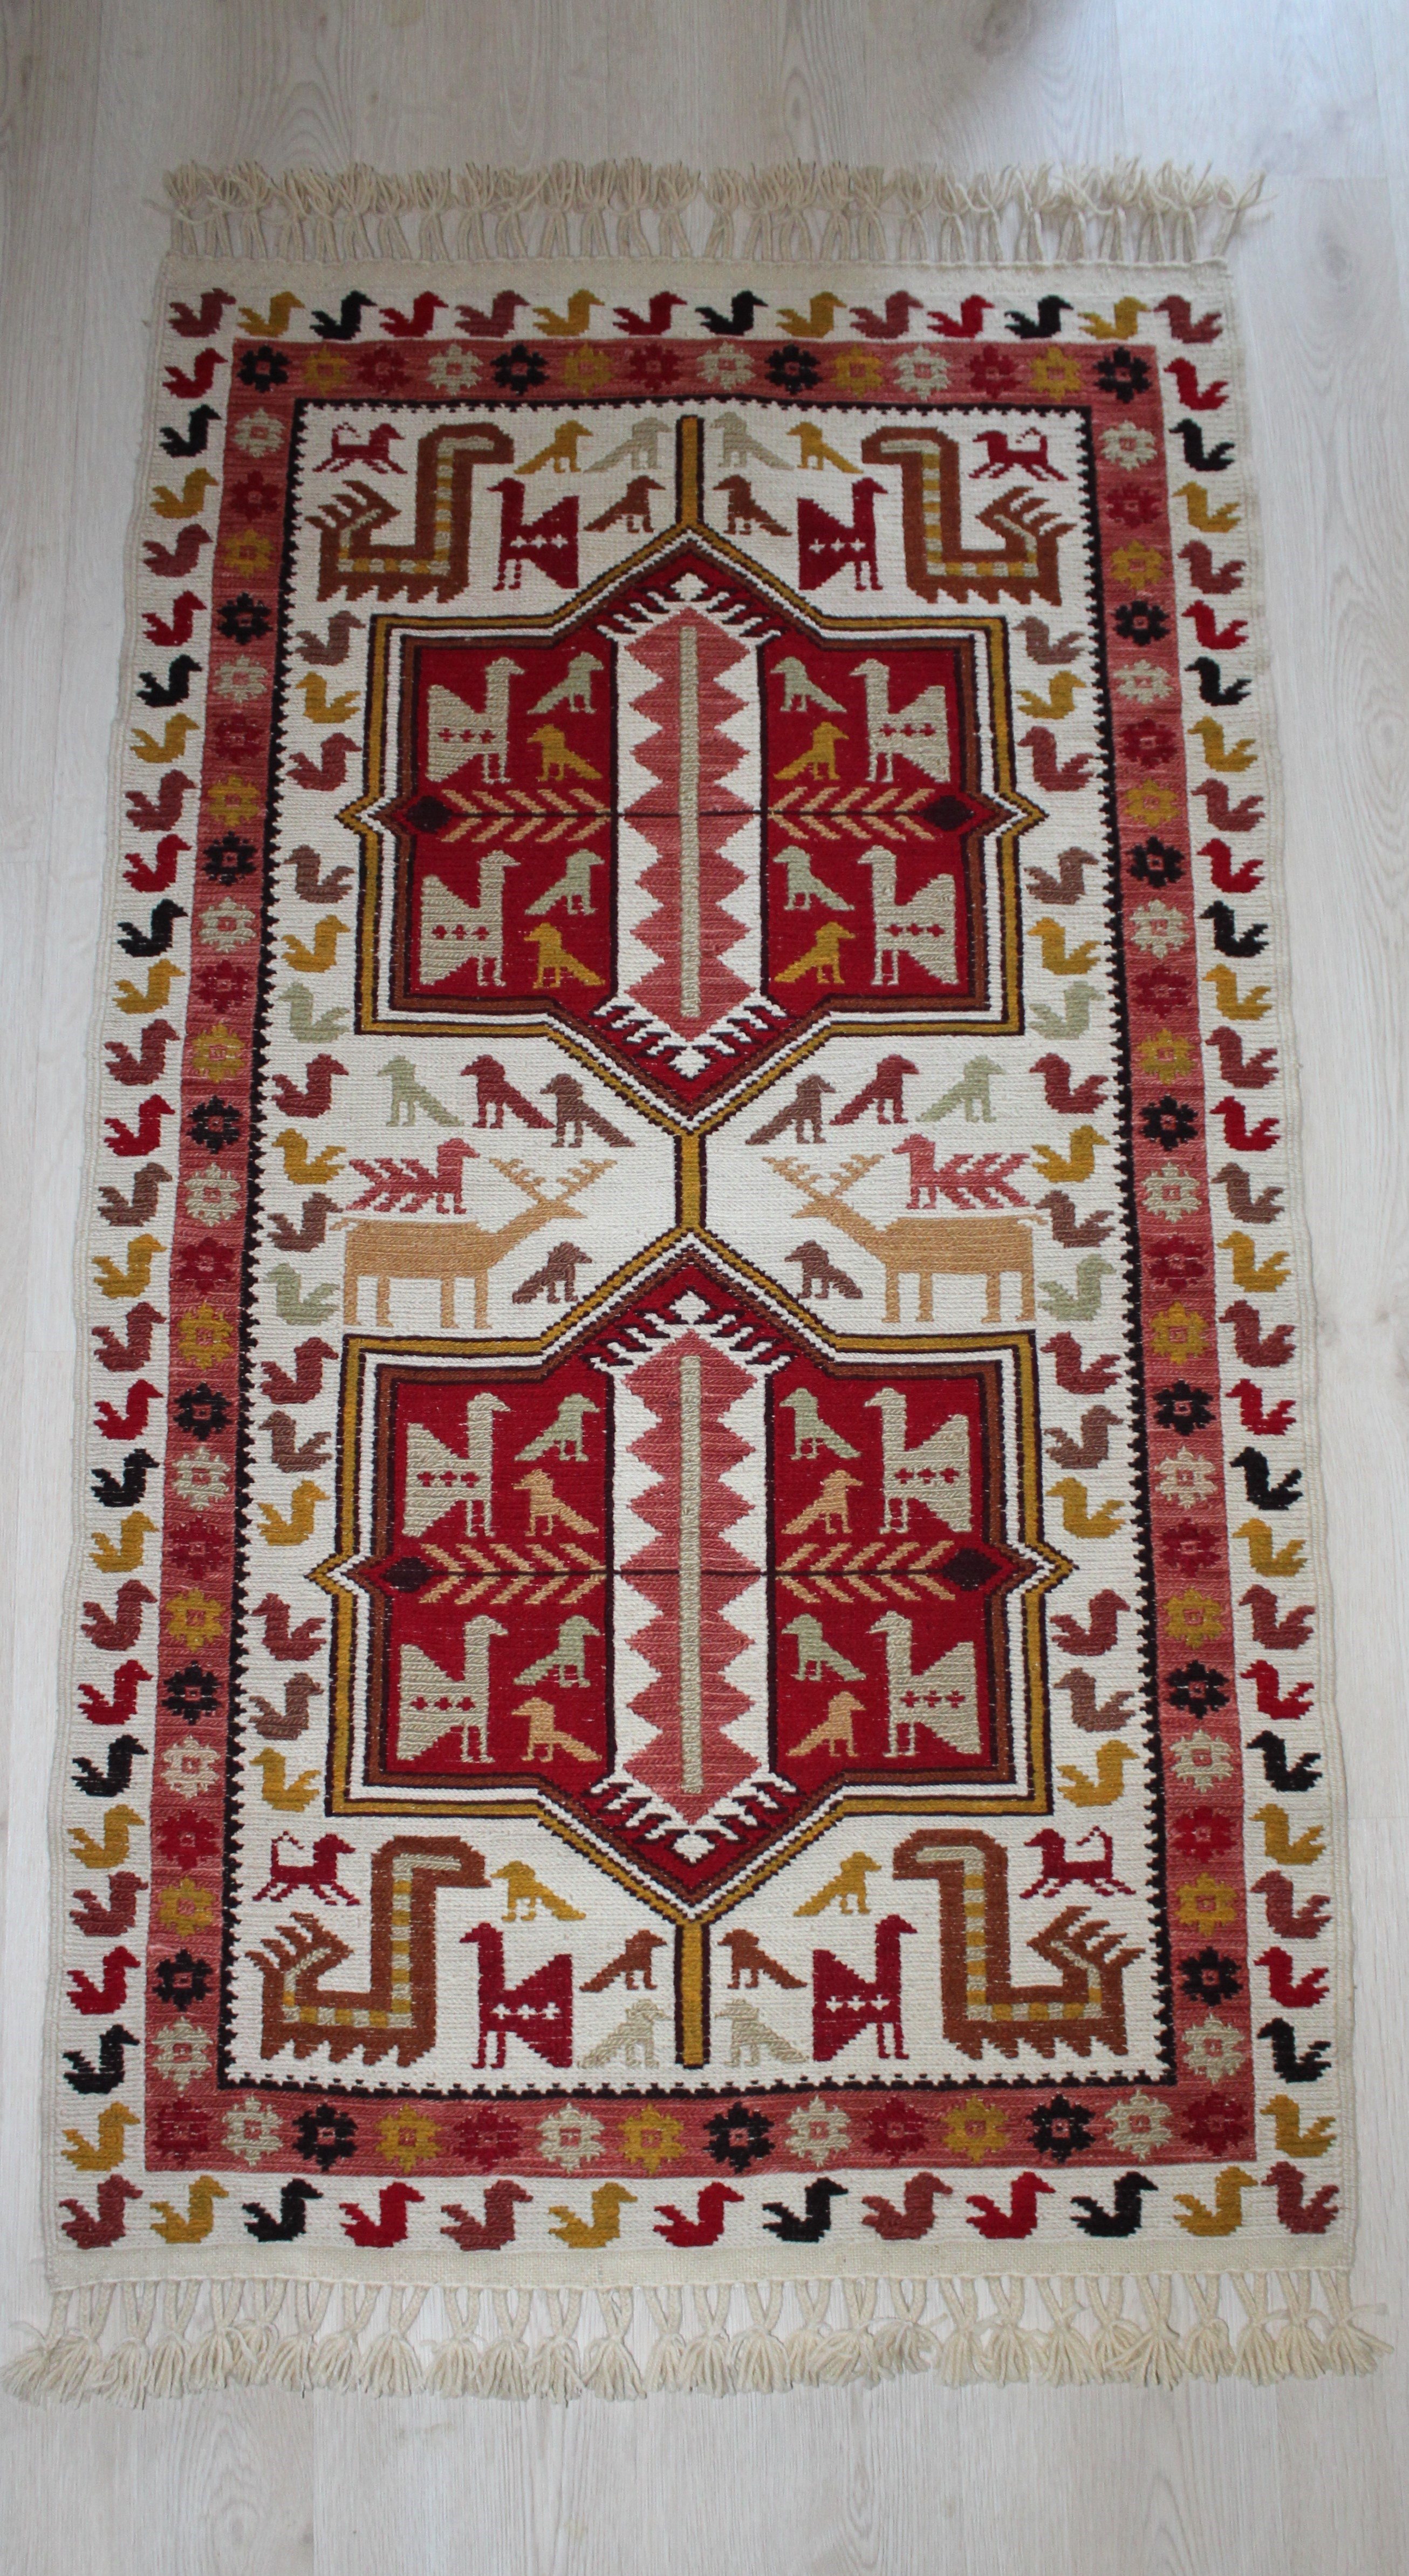 handwoven kilims of a rug colorful vintage turkish kilim shop large decorative rugs one kind